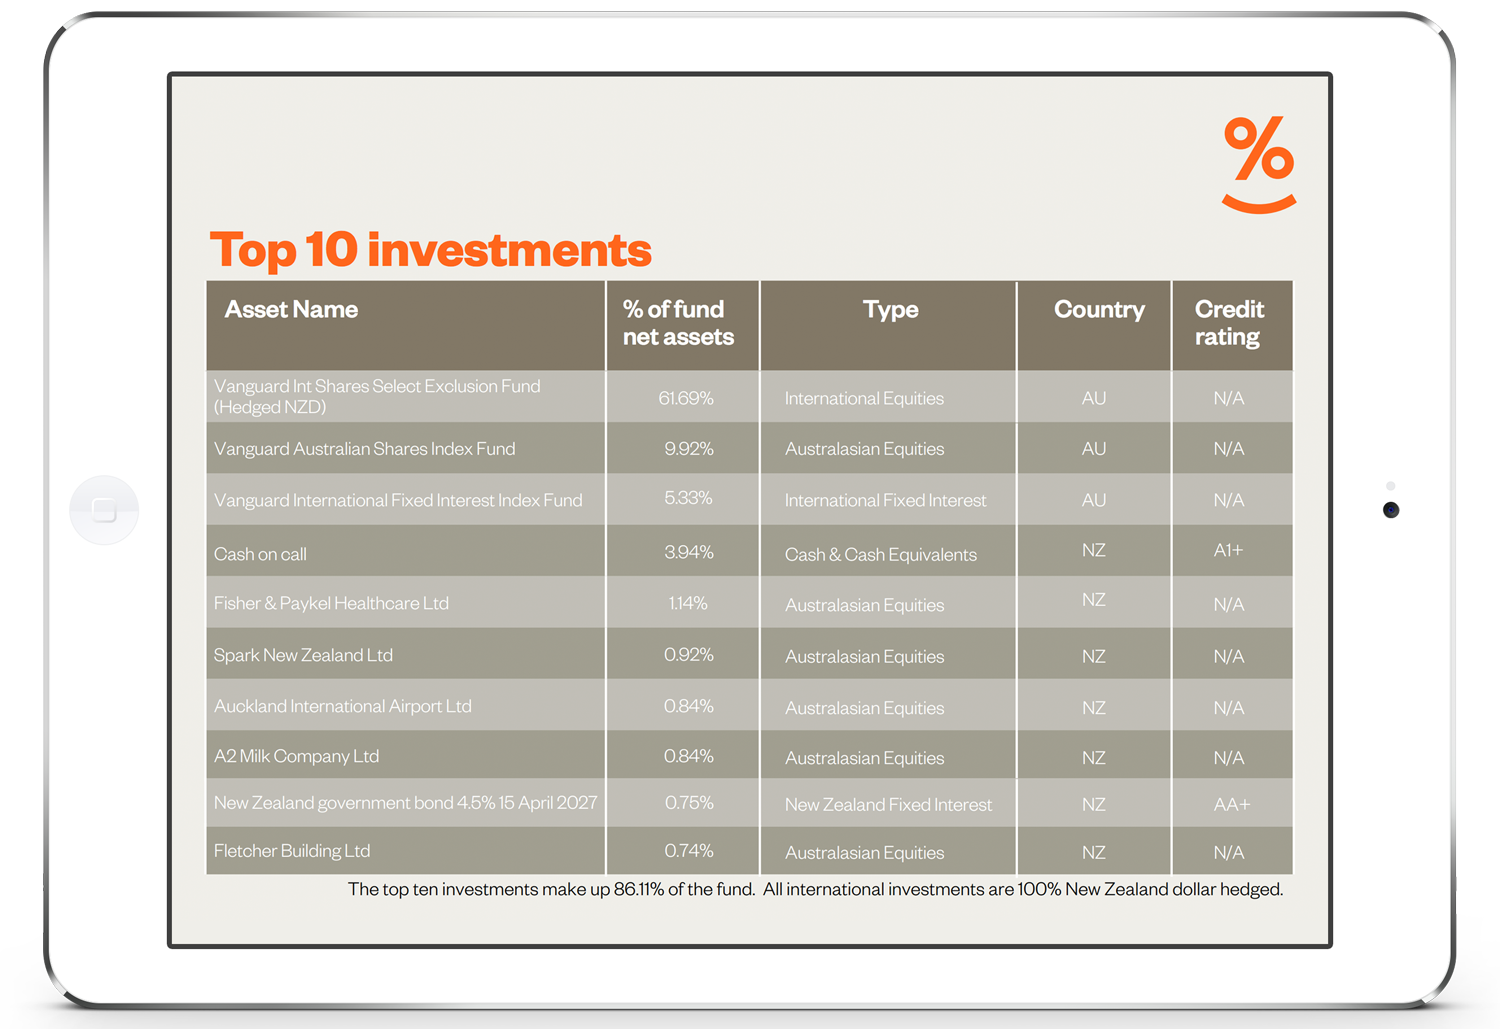 Simplicity Growth Fund: Top 10 investments